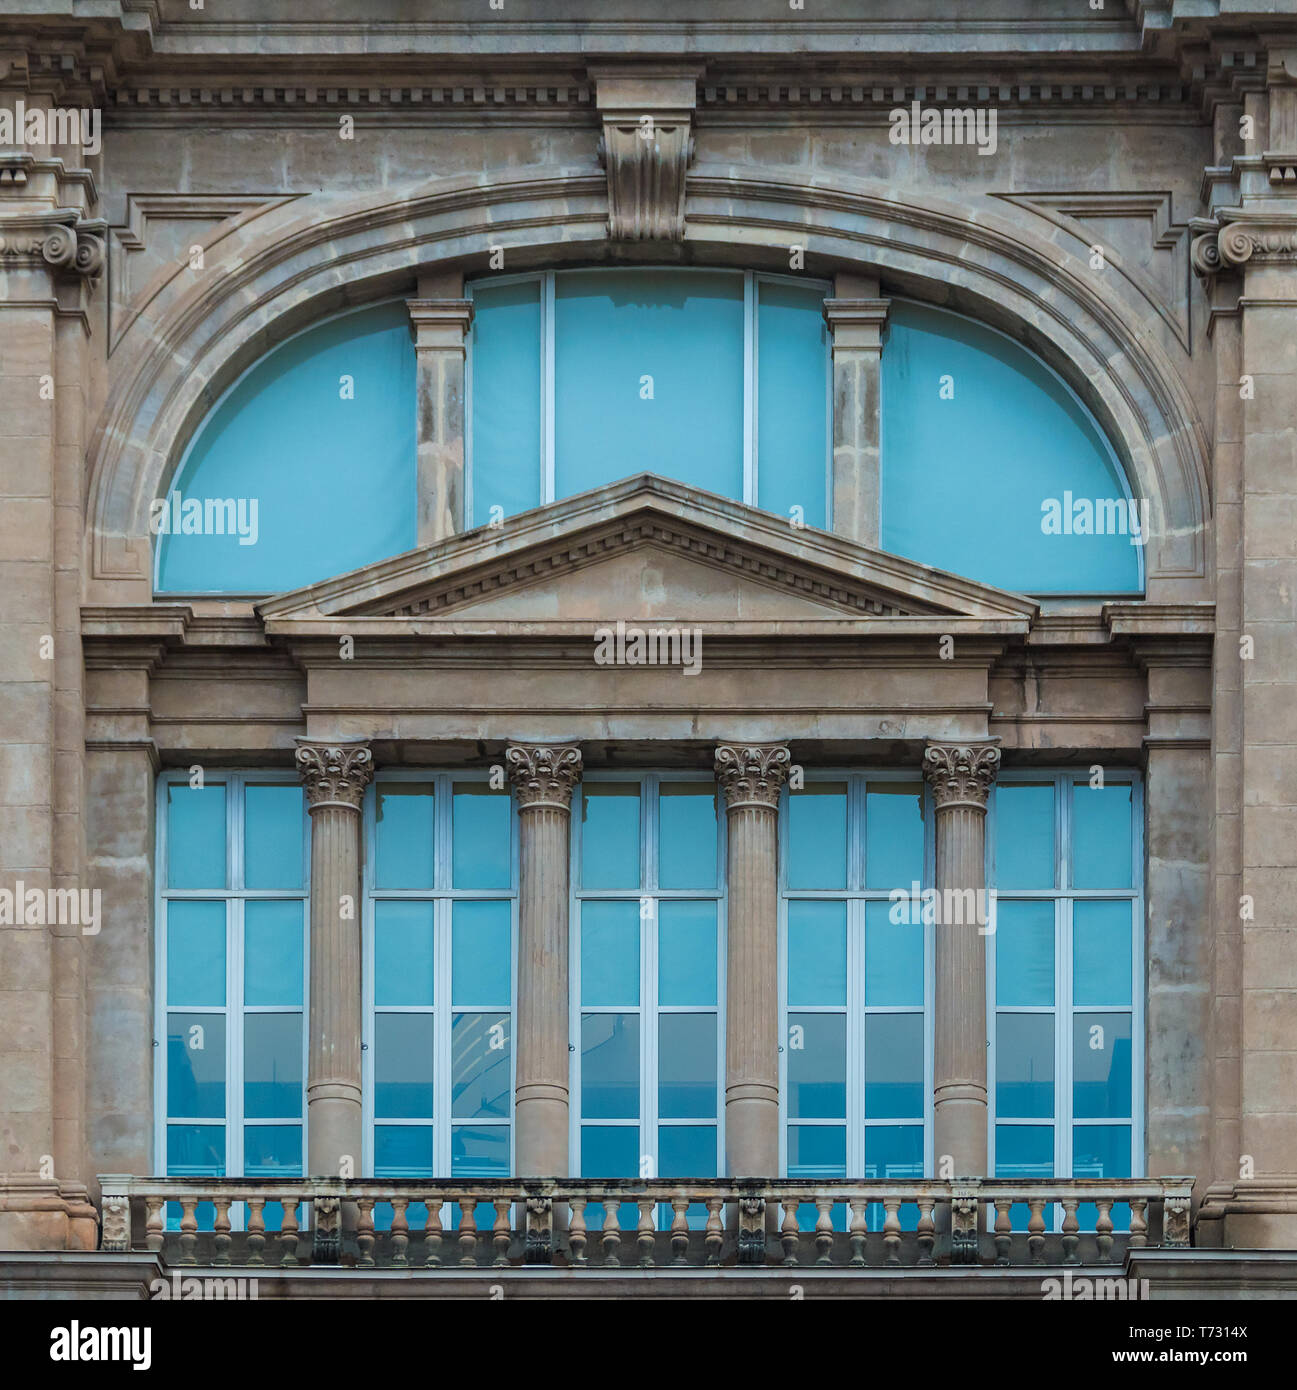 Barcelona, Catalonia, Spain - November 16, 2018: Several windows on the facade of the National Art Museum of Catalonia front view closeup - Stock Image